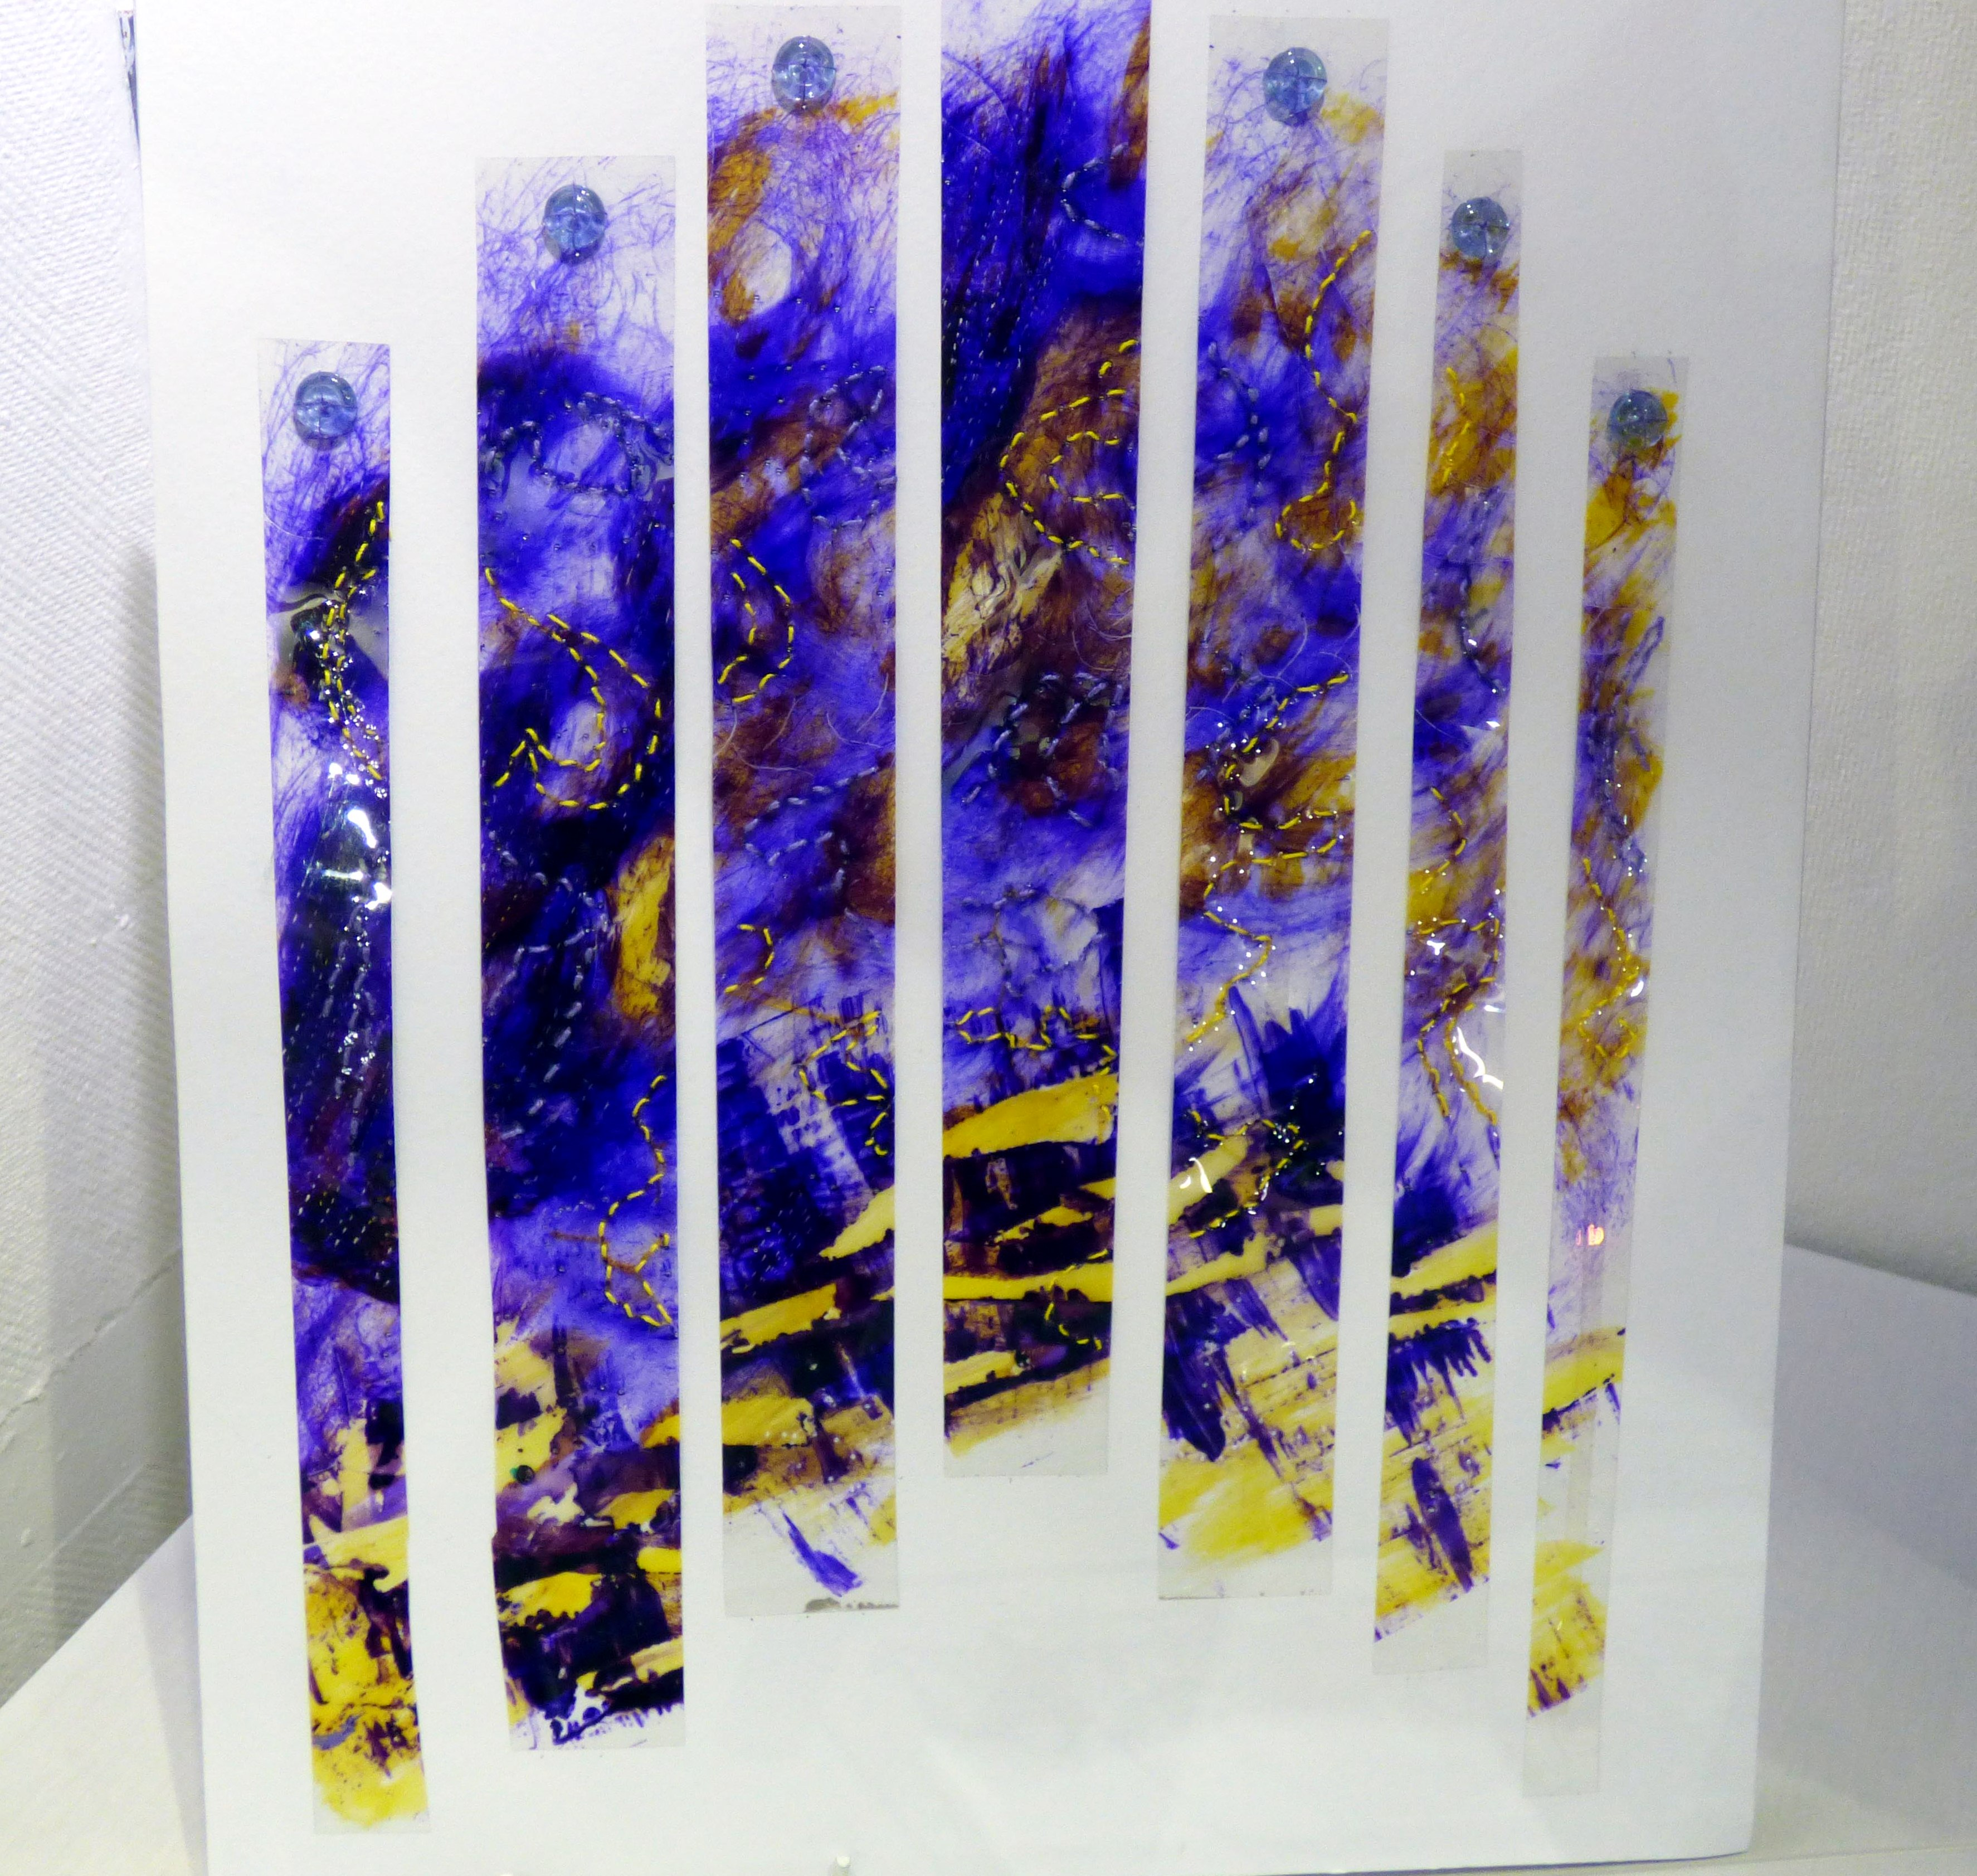 MOUNTAIN COLOURS by Pamela Headon, N.Wales EG, mixed media with hand stitch